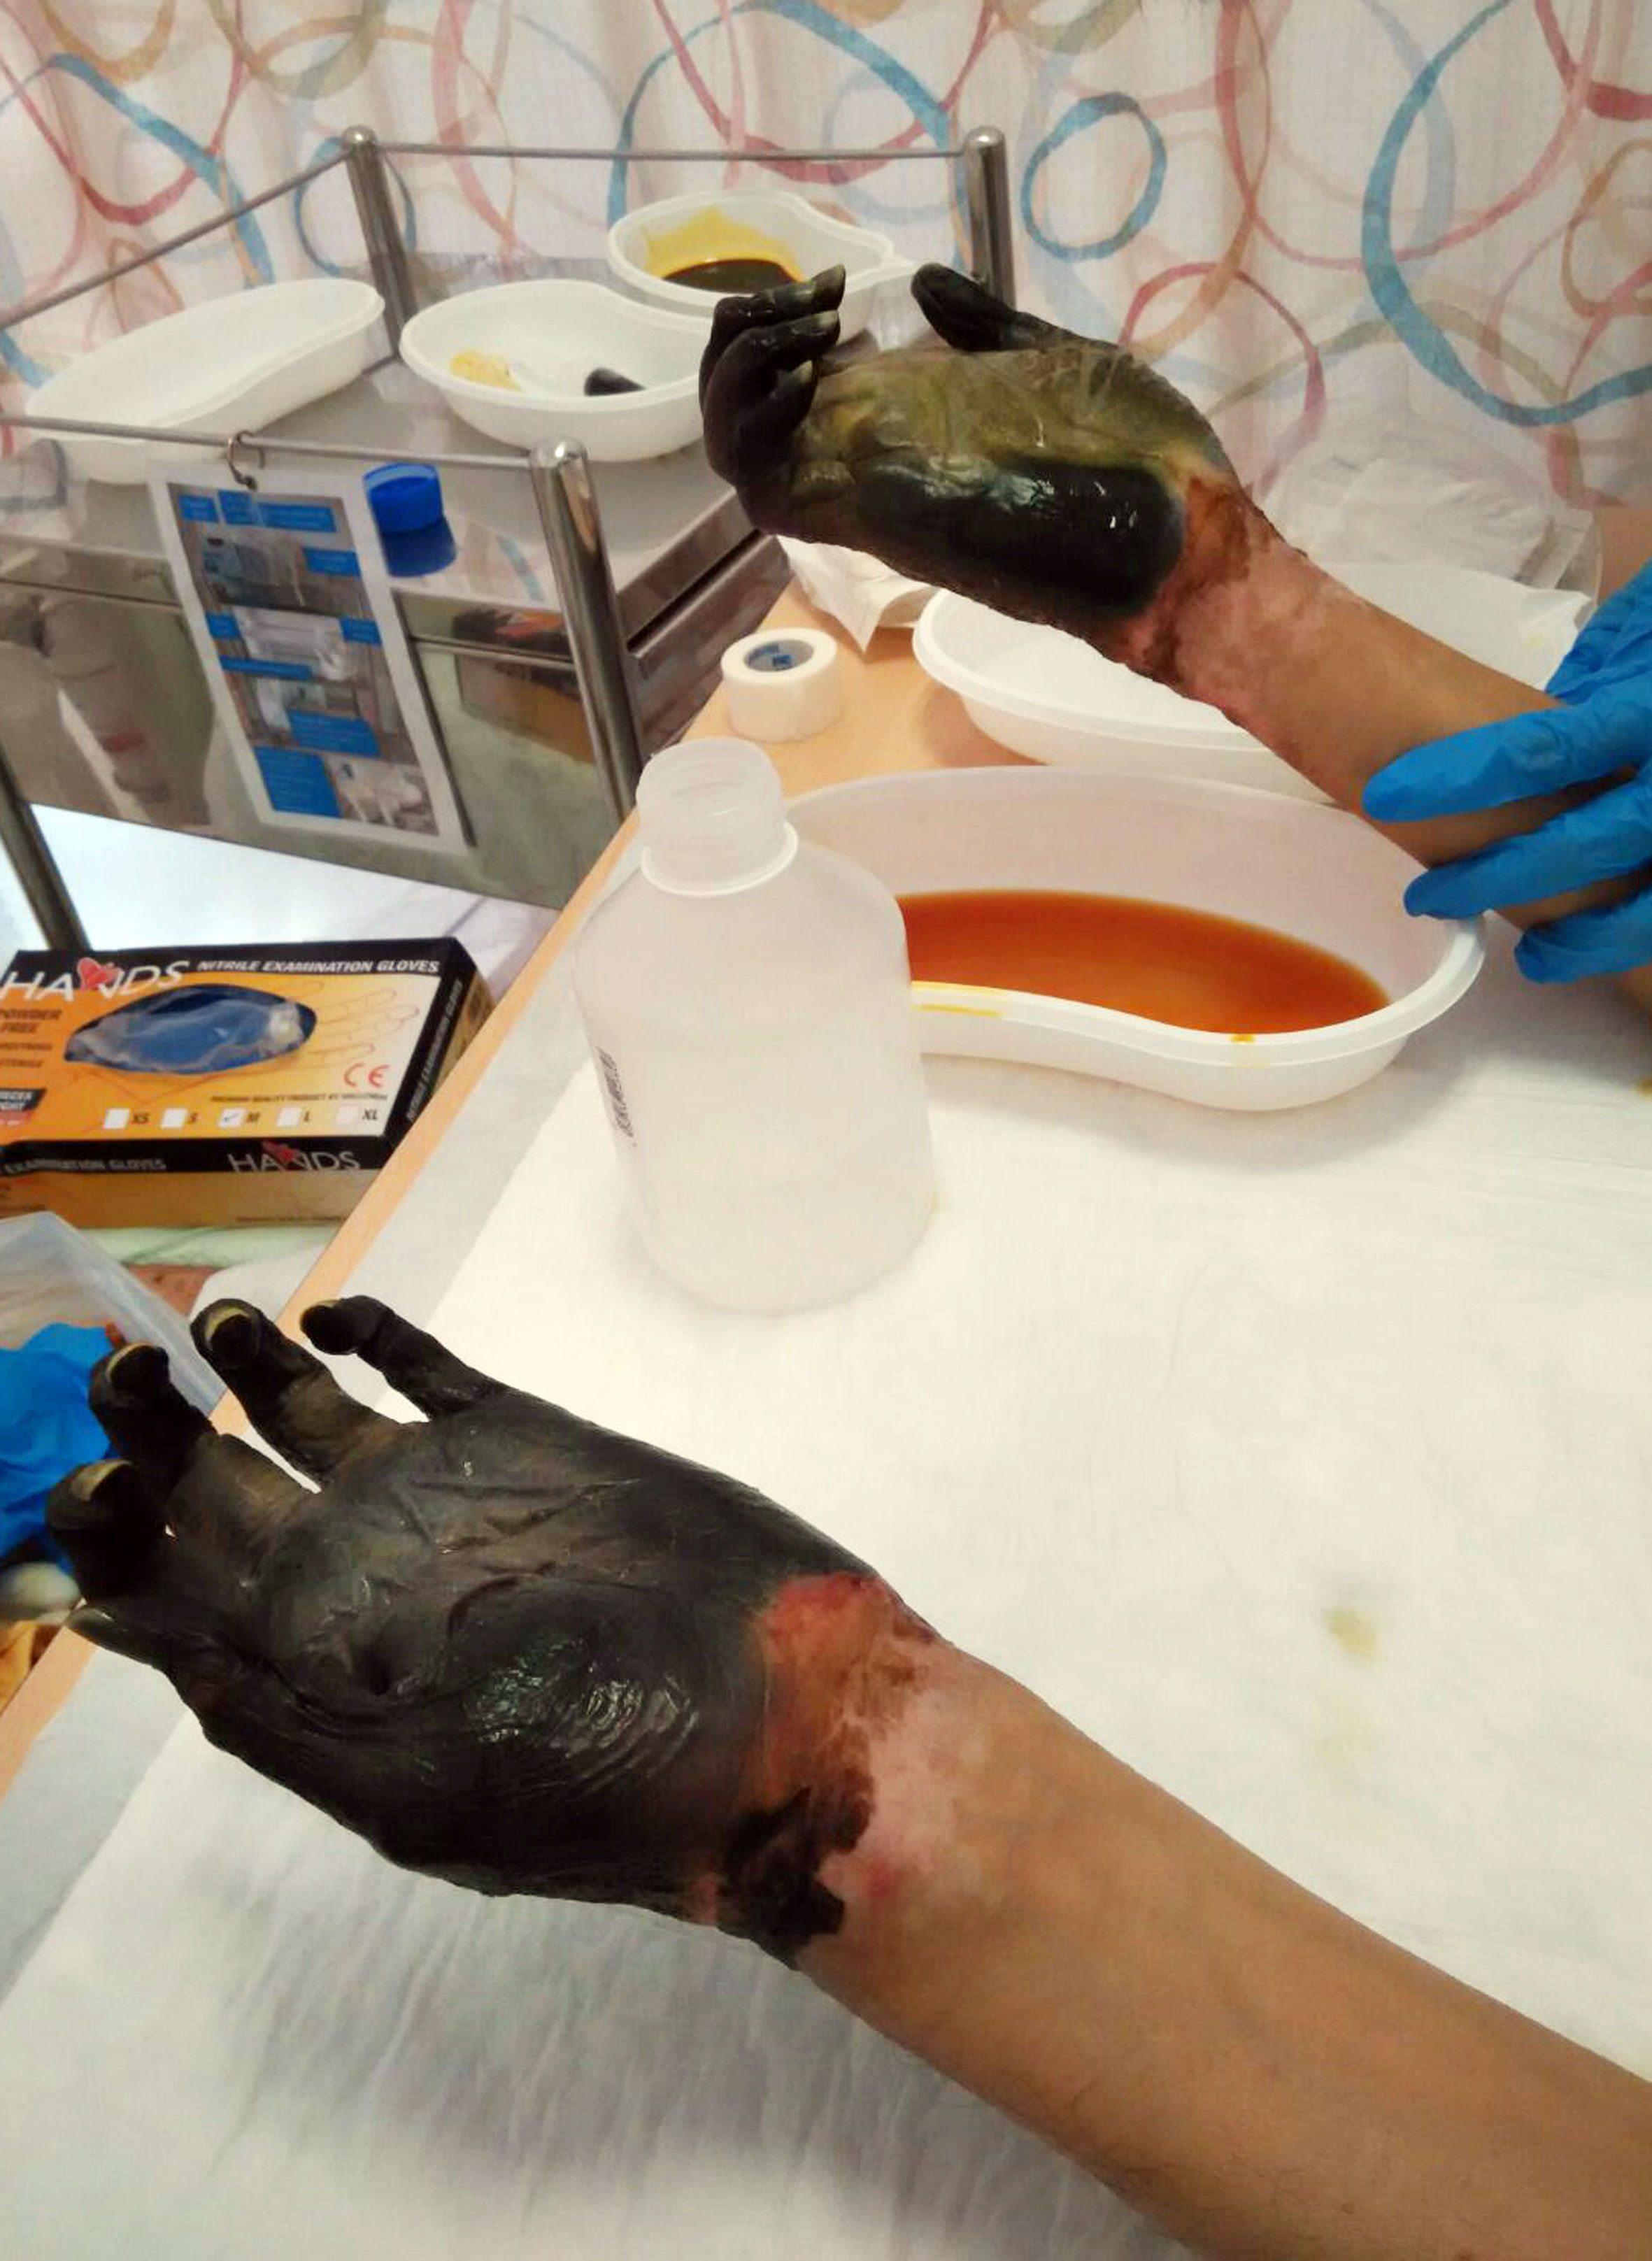 Man's hands and feet to be amputated after food poisoning ...